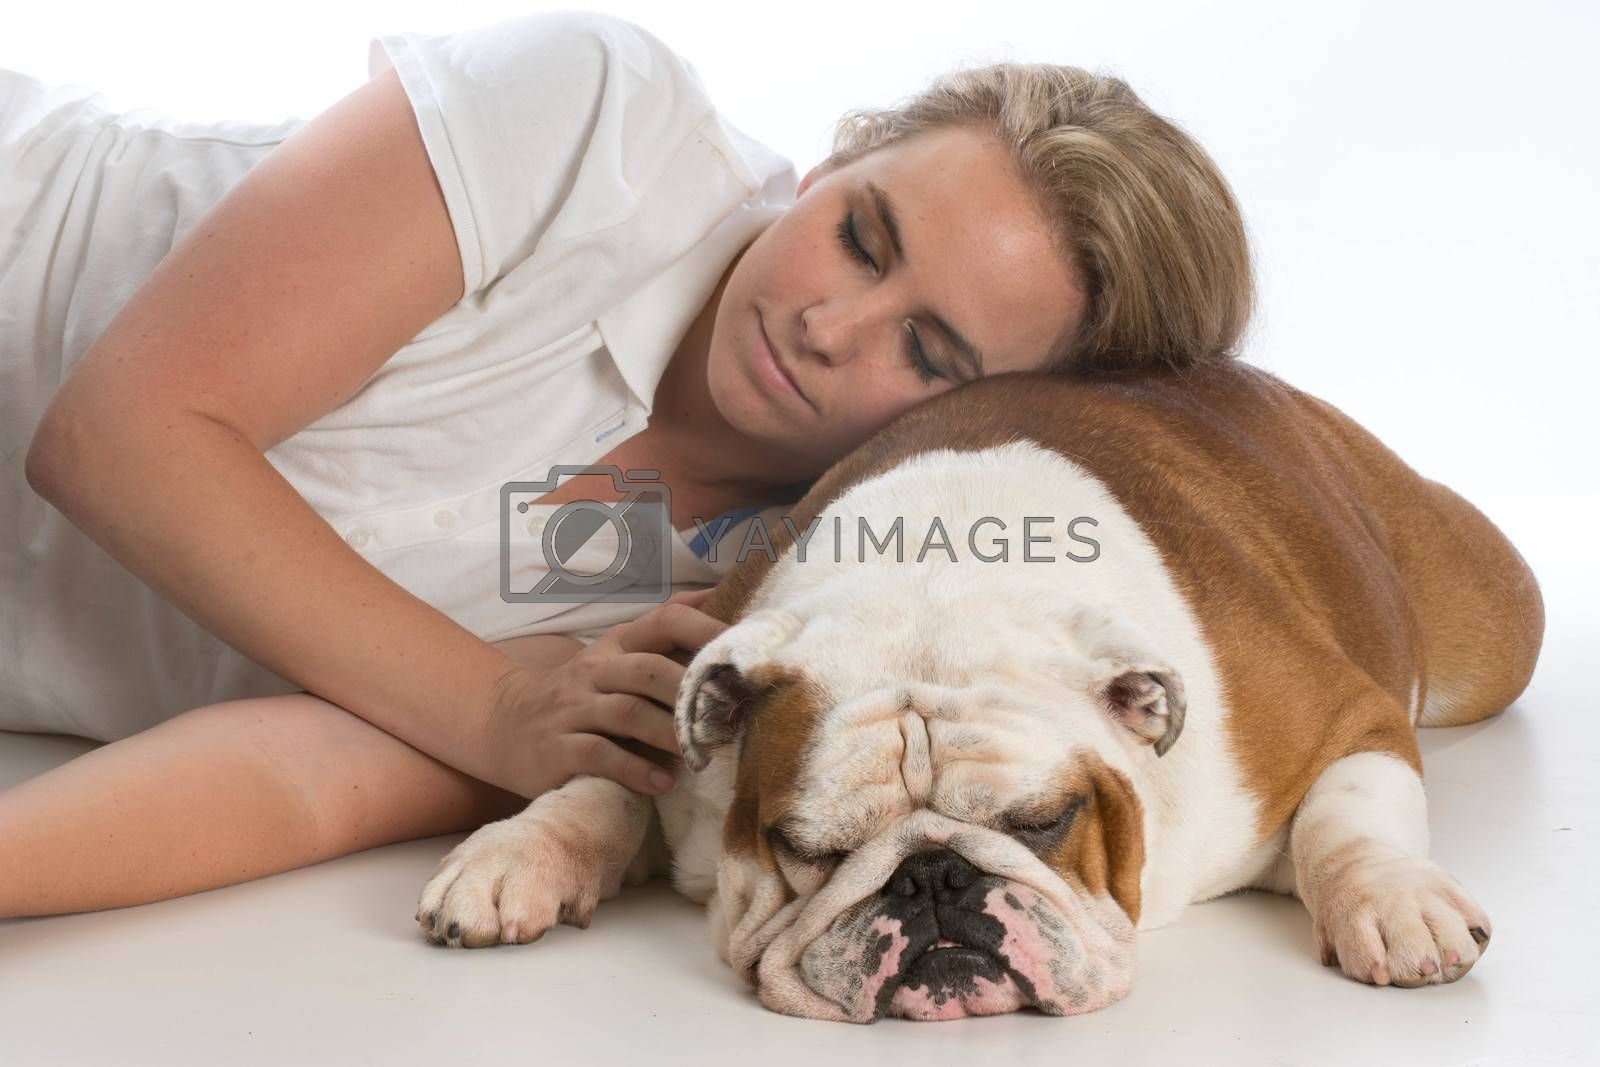 Royalty free image of woman and her dog by willeecole123